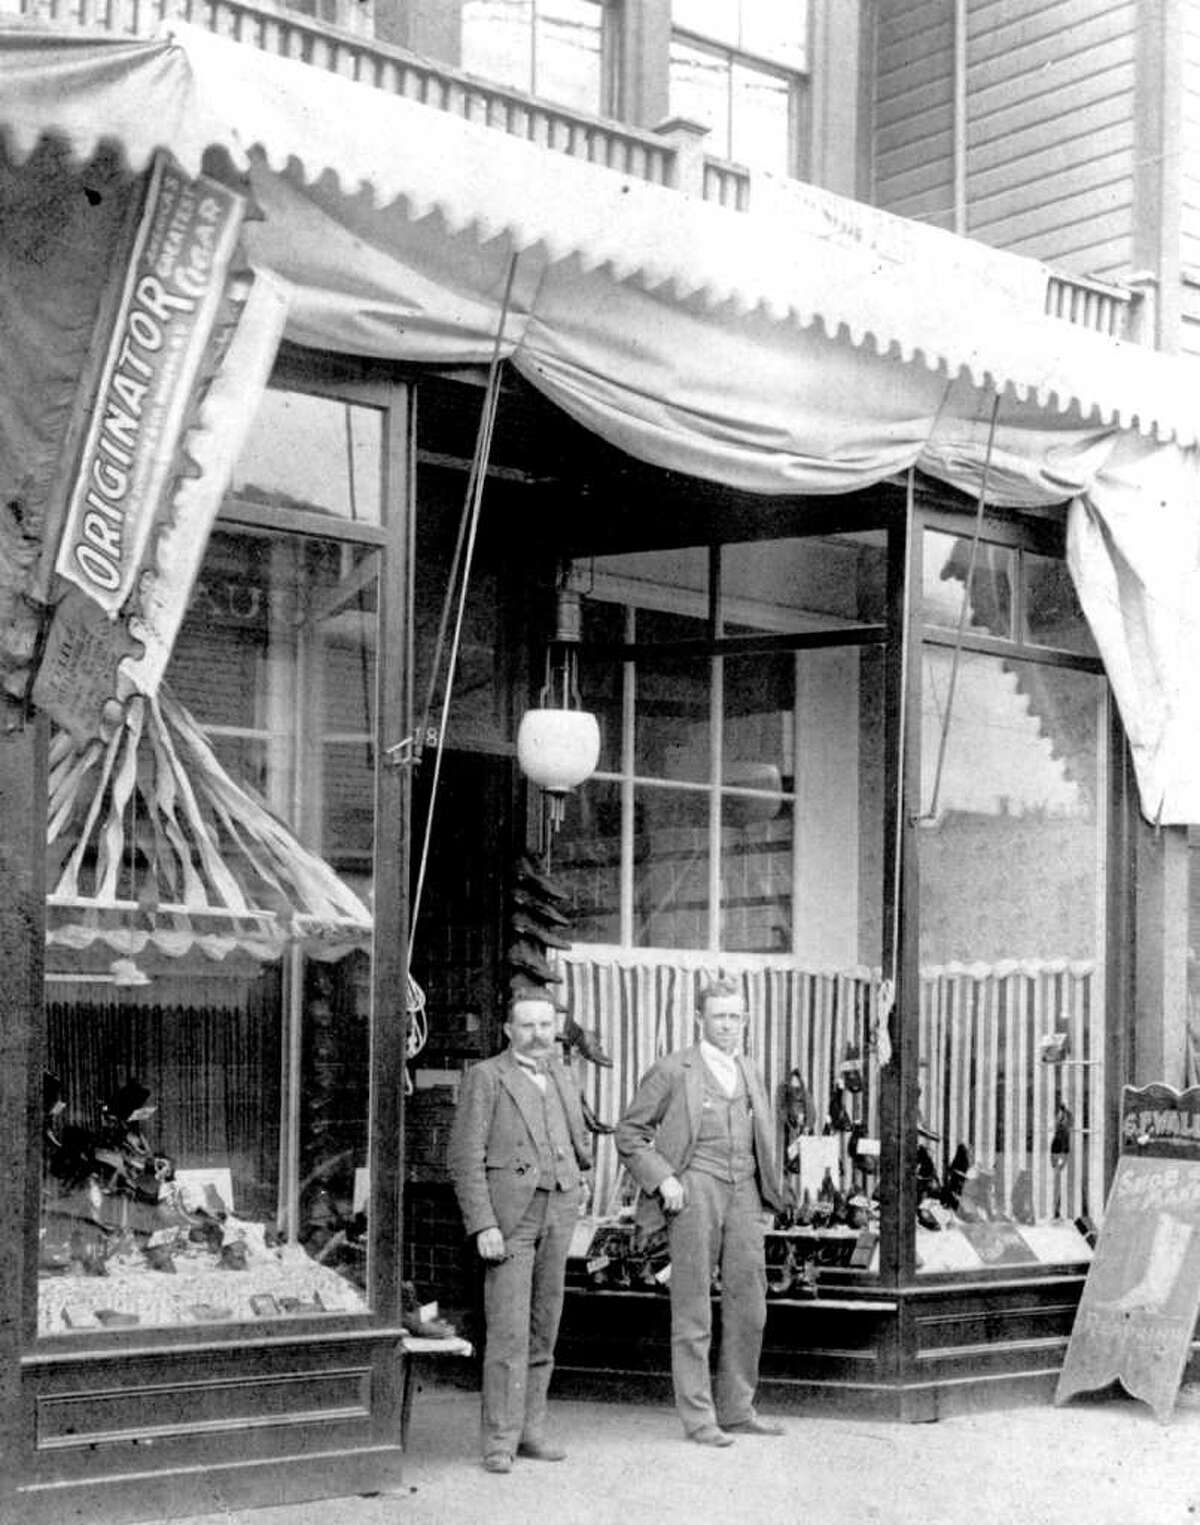 Carl Wallin, left, and John W. Nordstrom at their store near Fourth Avenue and Pike Street, 1901.